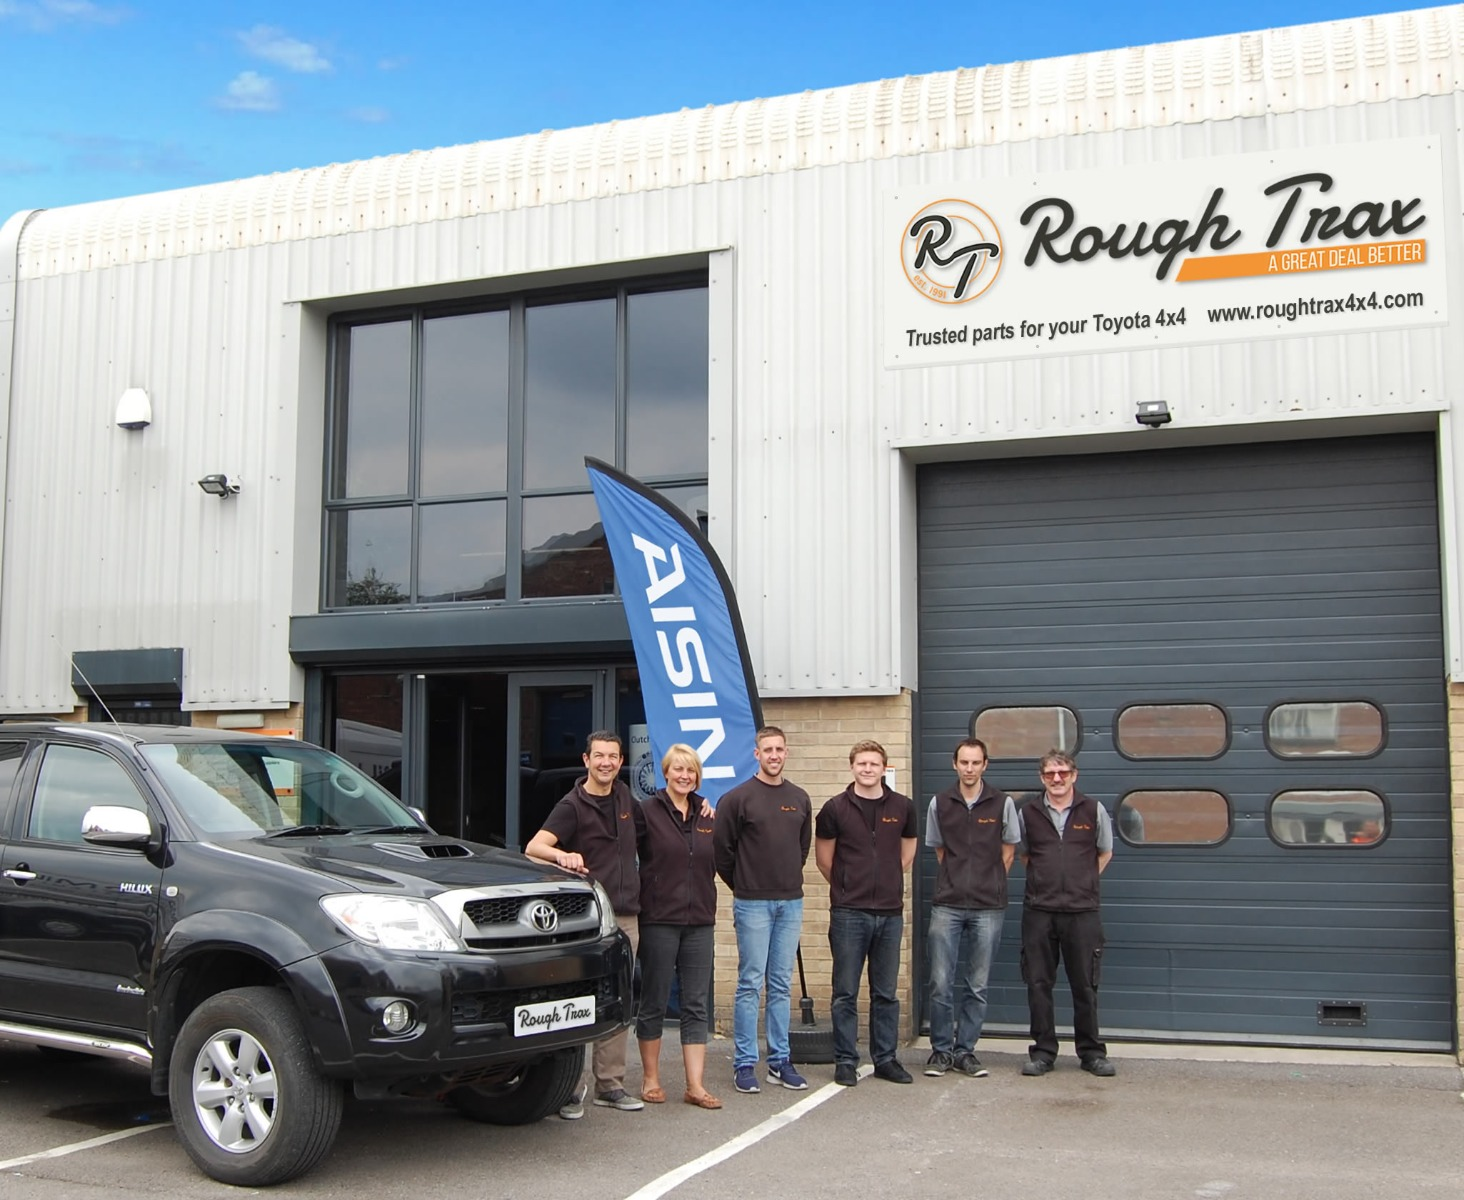 RoughTrax Team Celebrating 25 Years of Business